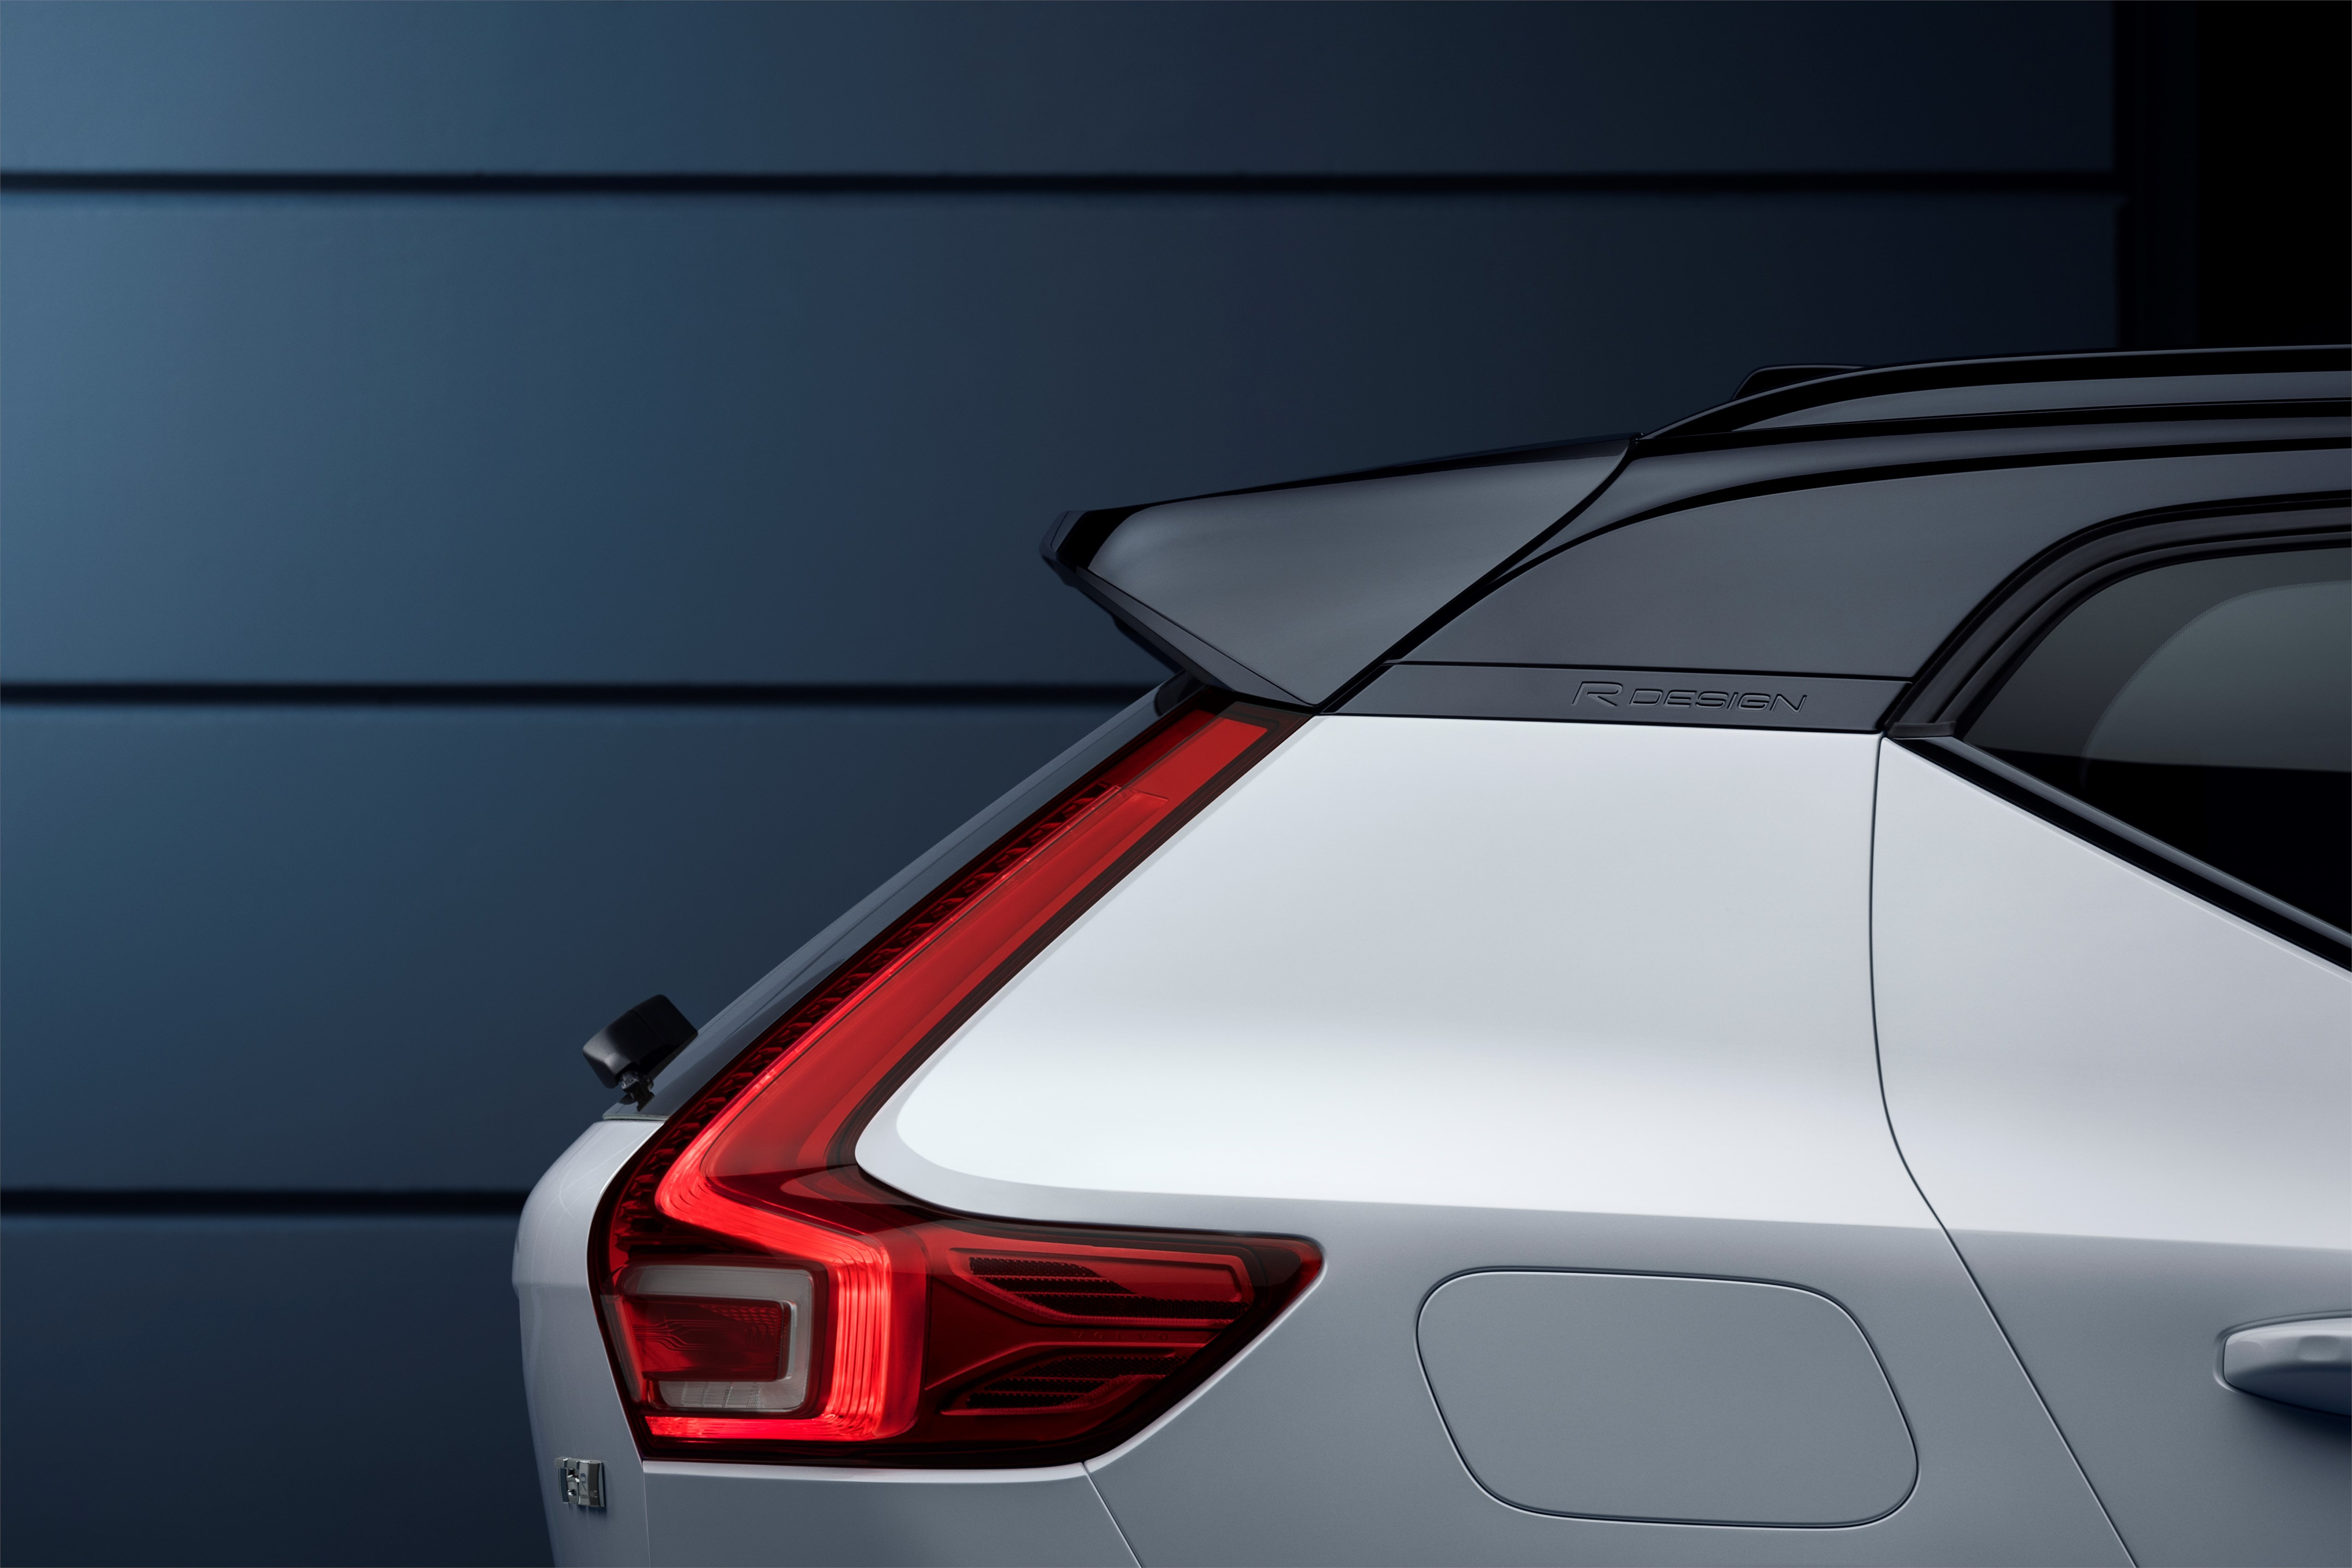 New Volvo XC40 R-design in Crystal white with black roof - exterior detail